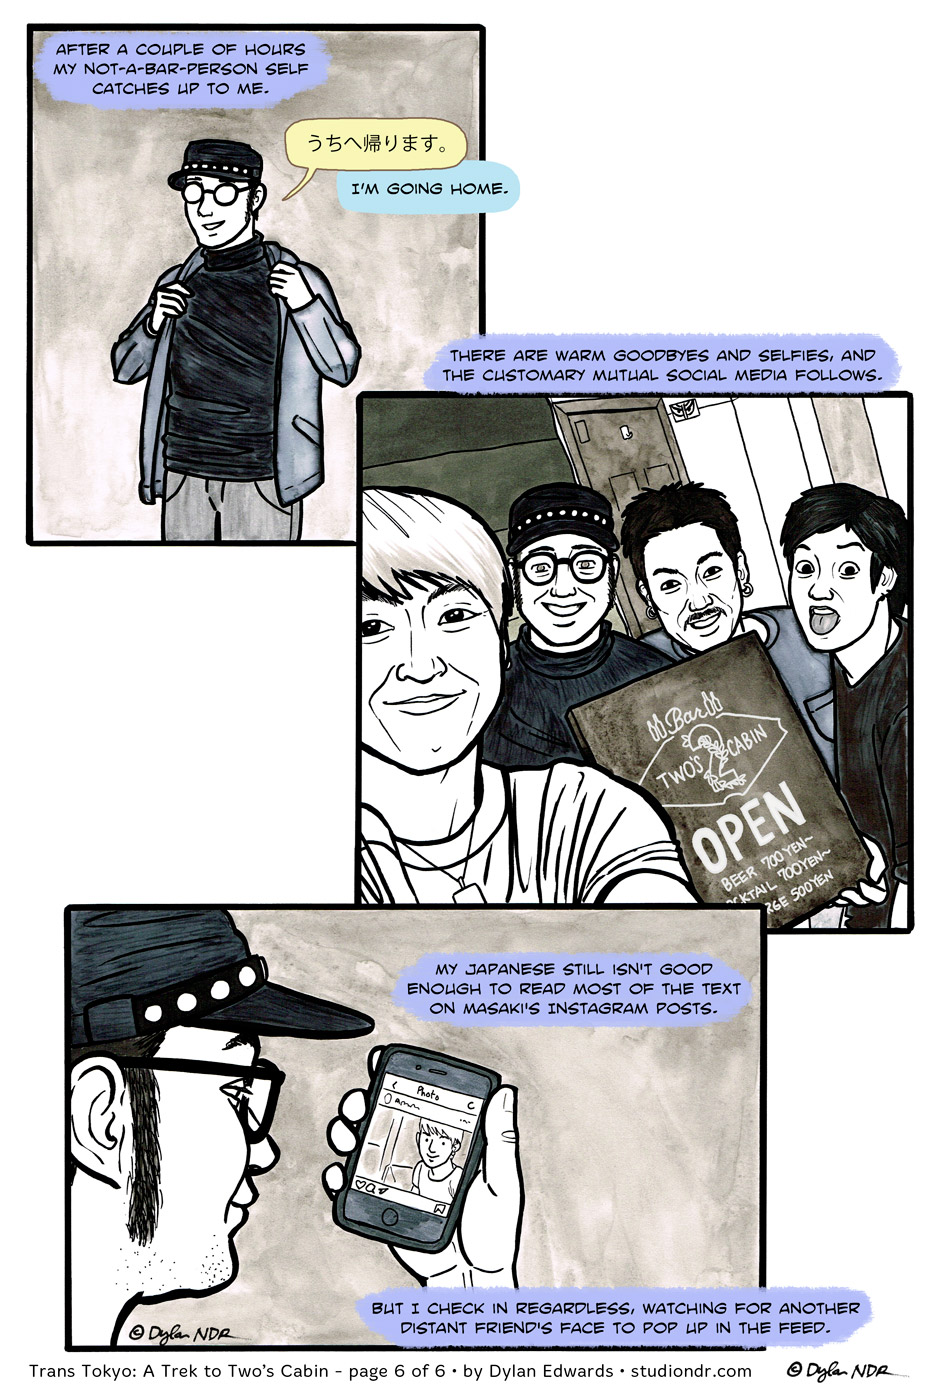 Trans Tokyo: A Trek to Two's Cabin – page 6